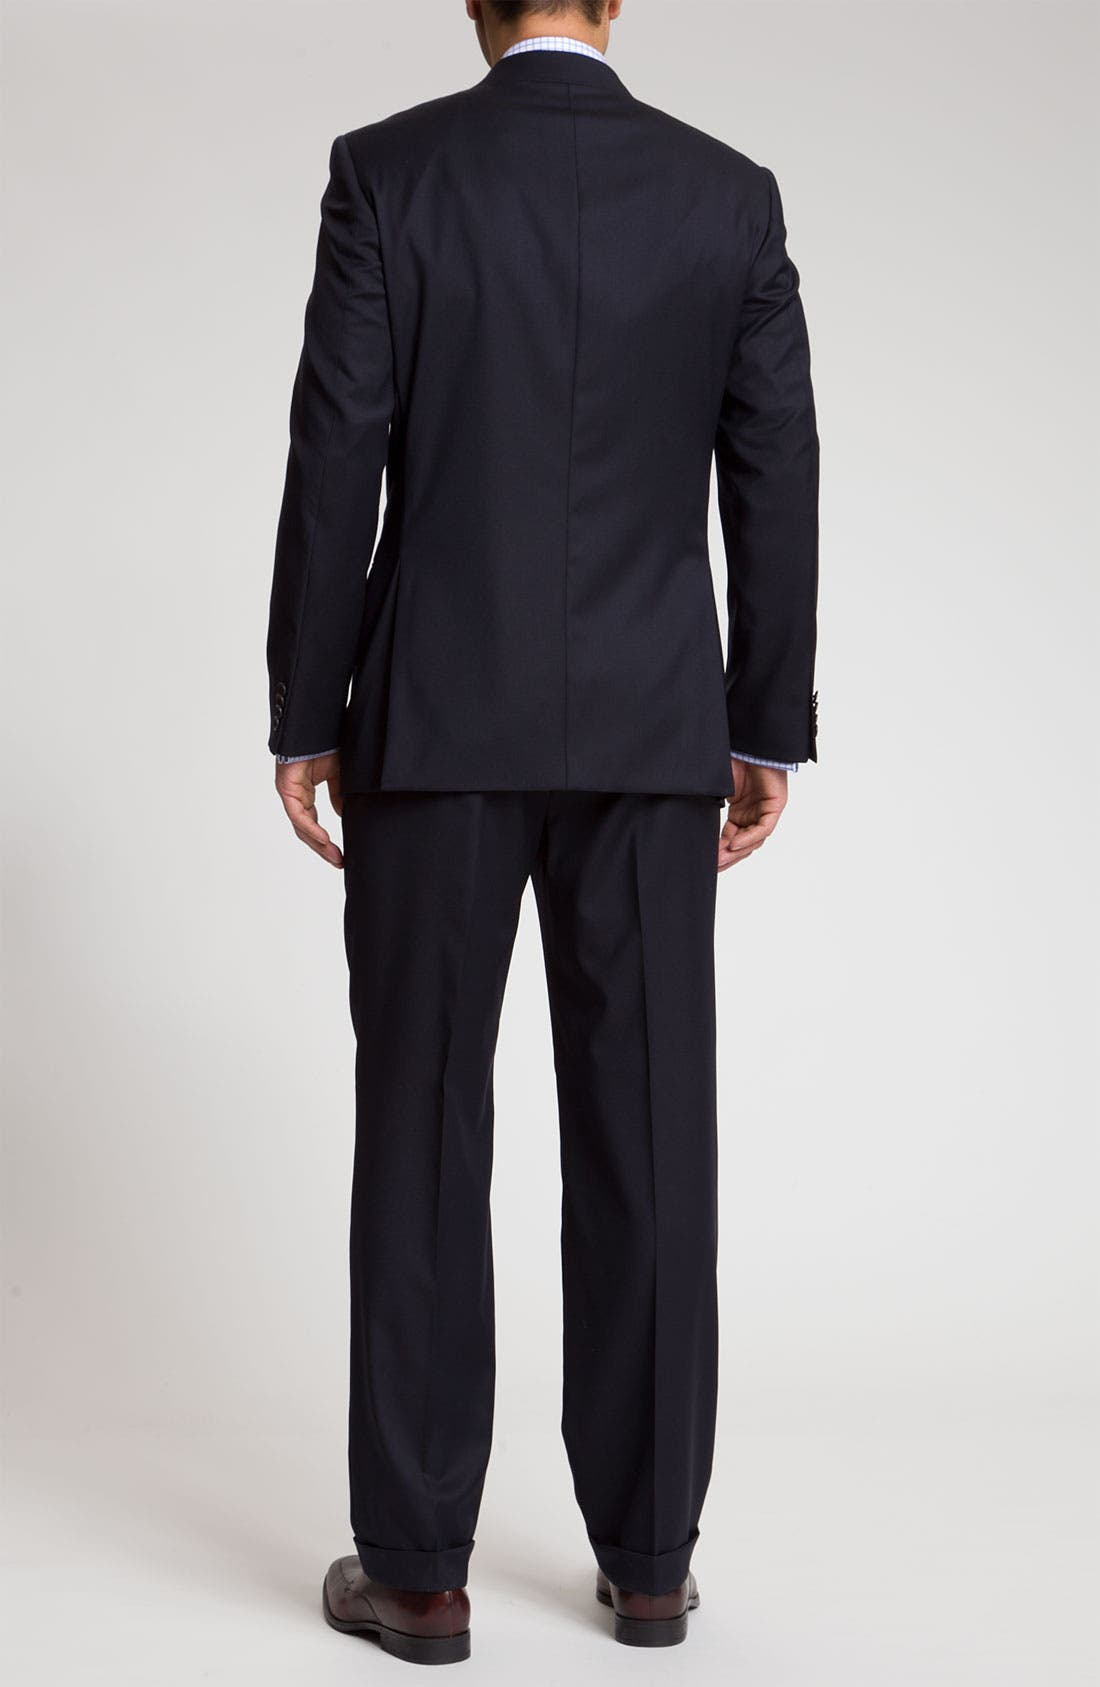 Alternate Image 3  - Joseph Abboud 'Signature Silver' Navy Wool Suit